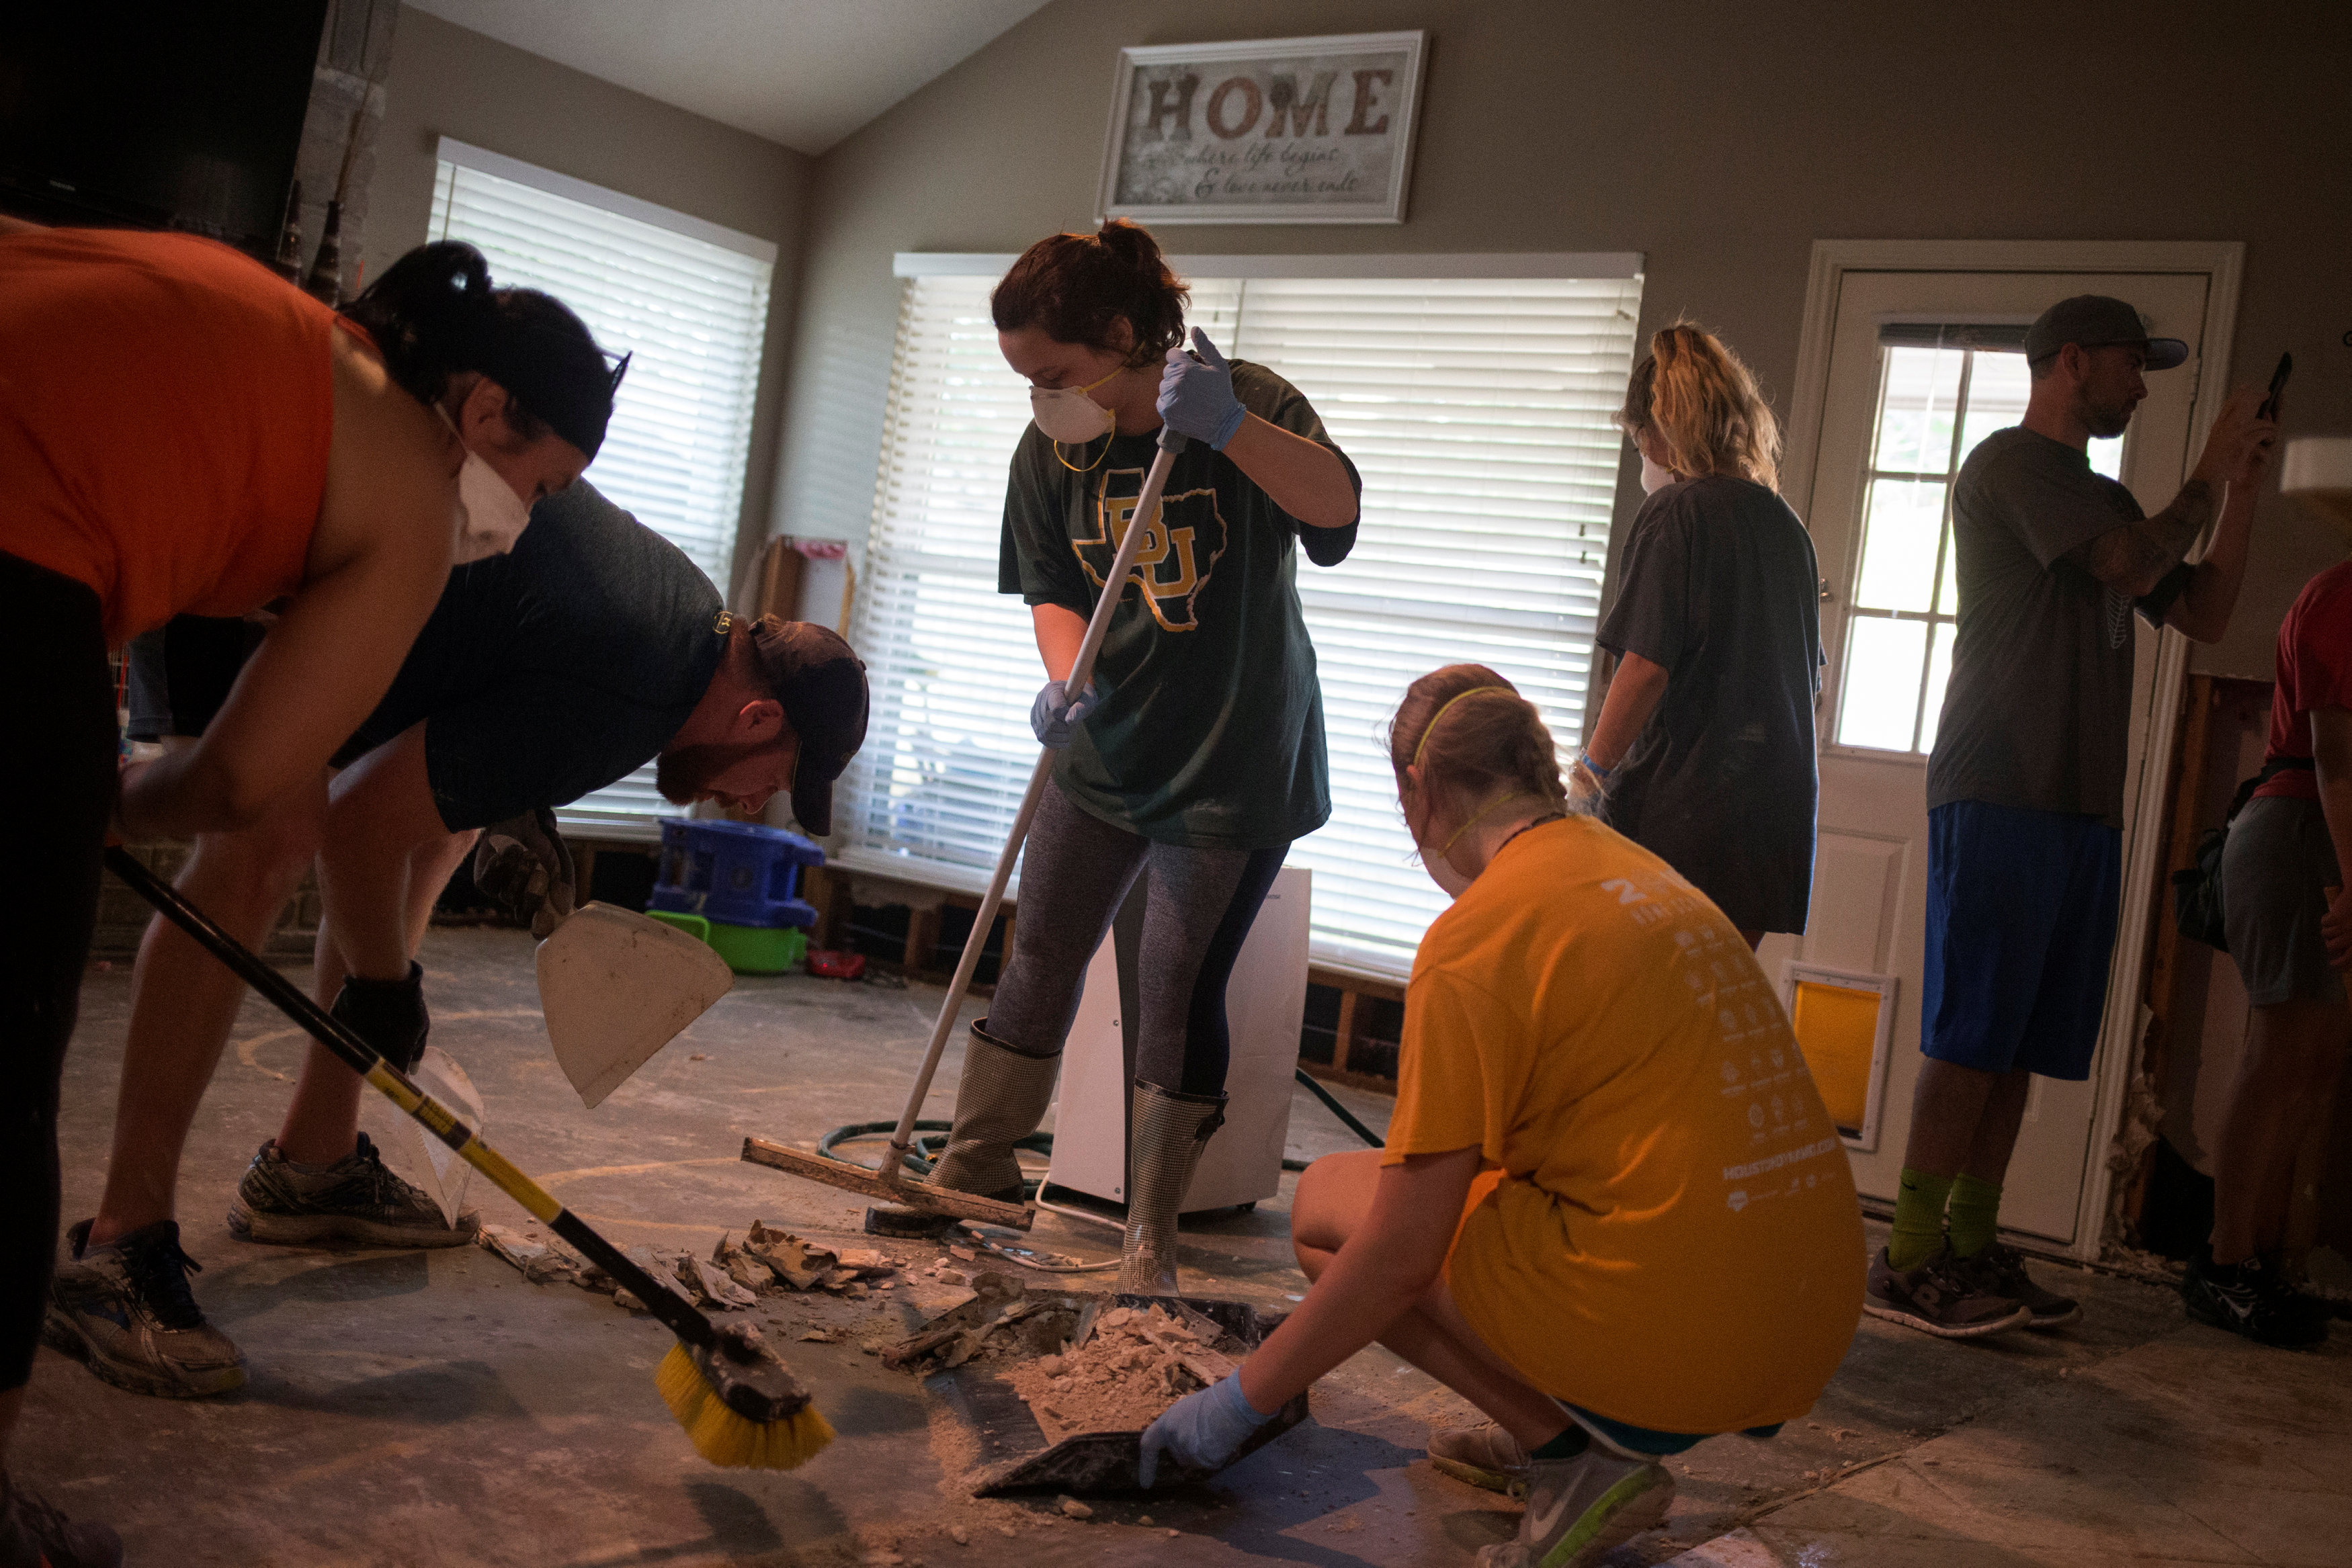 Samaritans help clear debris from the house of a neighbor which was left flooded from Tropical Storm Harvey in Houston, Texas, U.S. September 3, 2017.